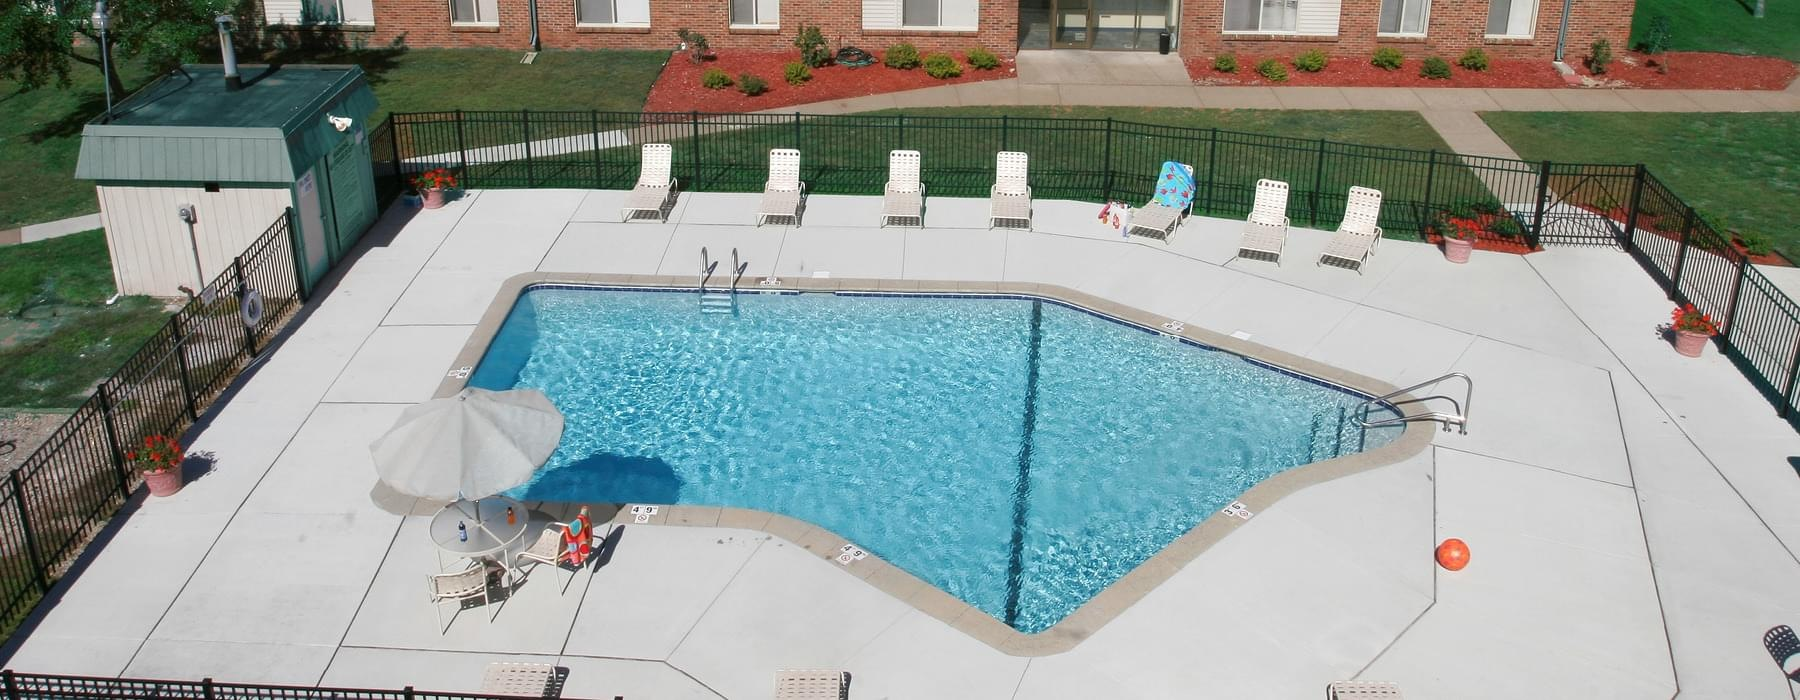 aerial view of outdoor swimming pool